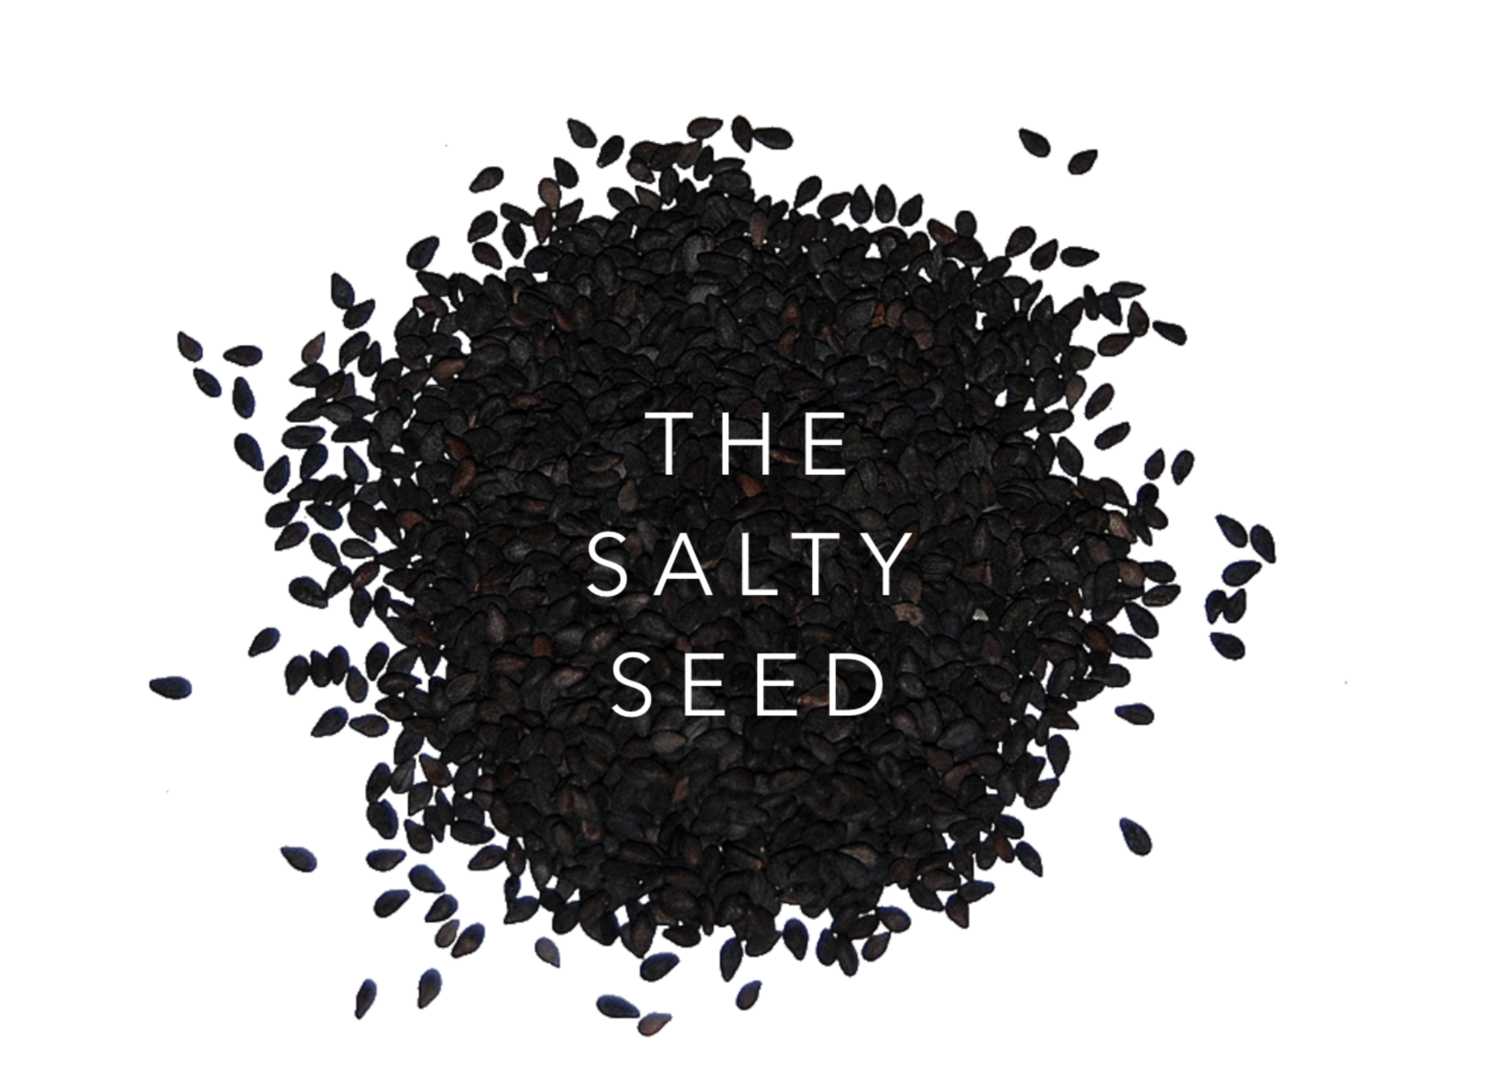 The Salty Seed